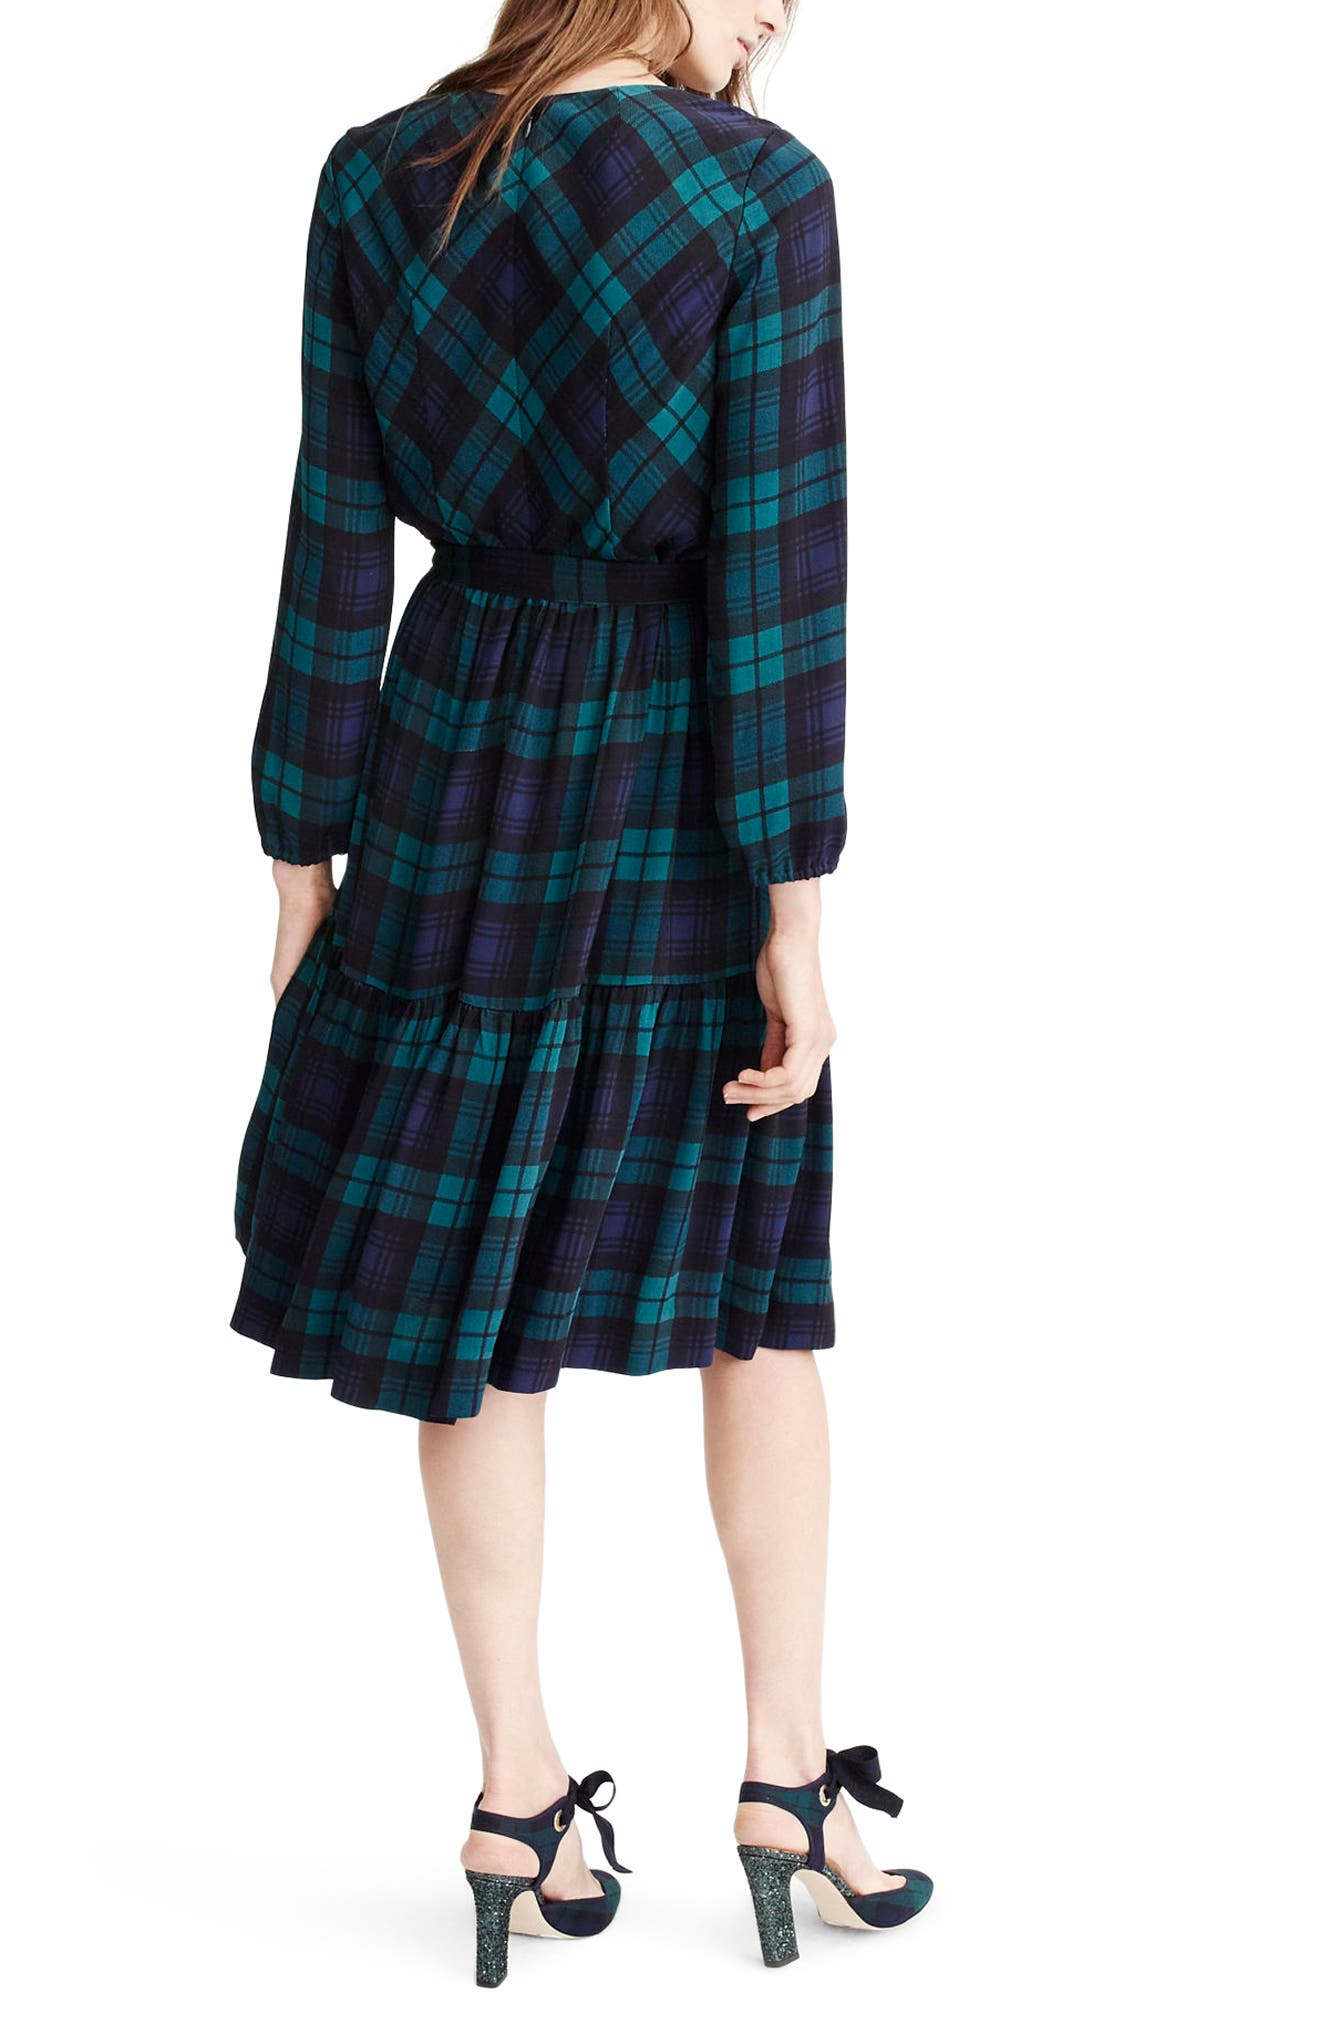 J.Crew Drapey Dress in Black Watch Plaid,                             Alternate thumbnail 2, color,                             Blue/ Green